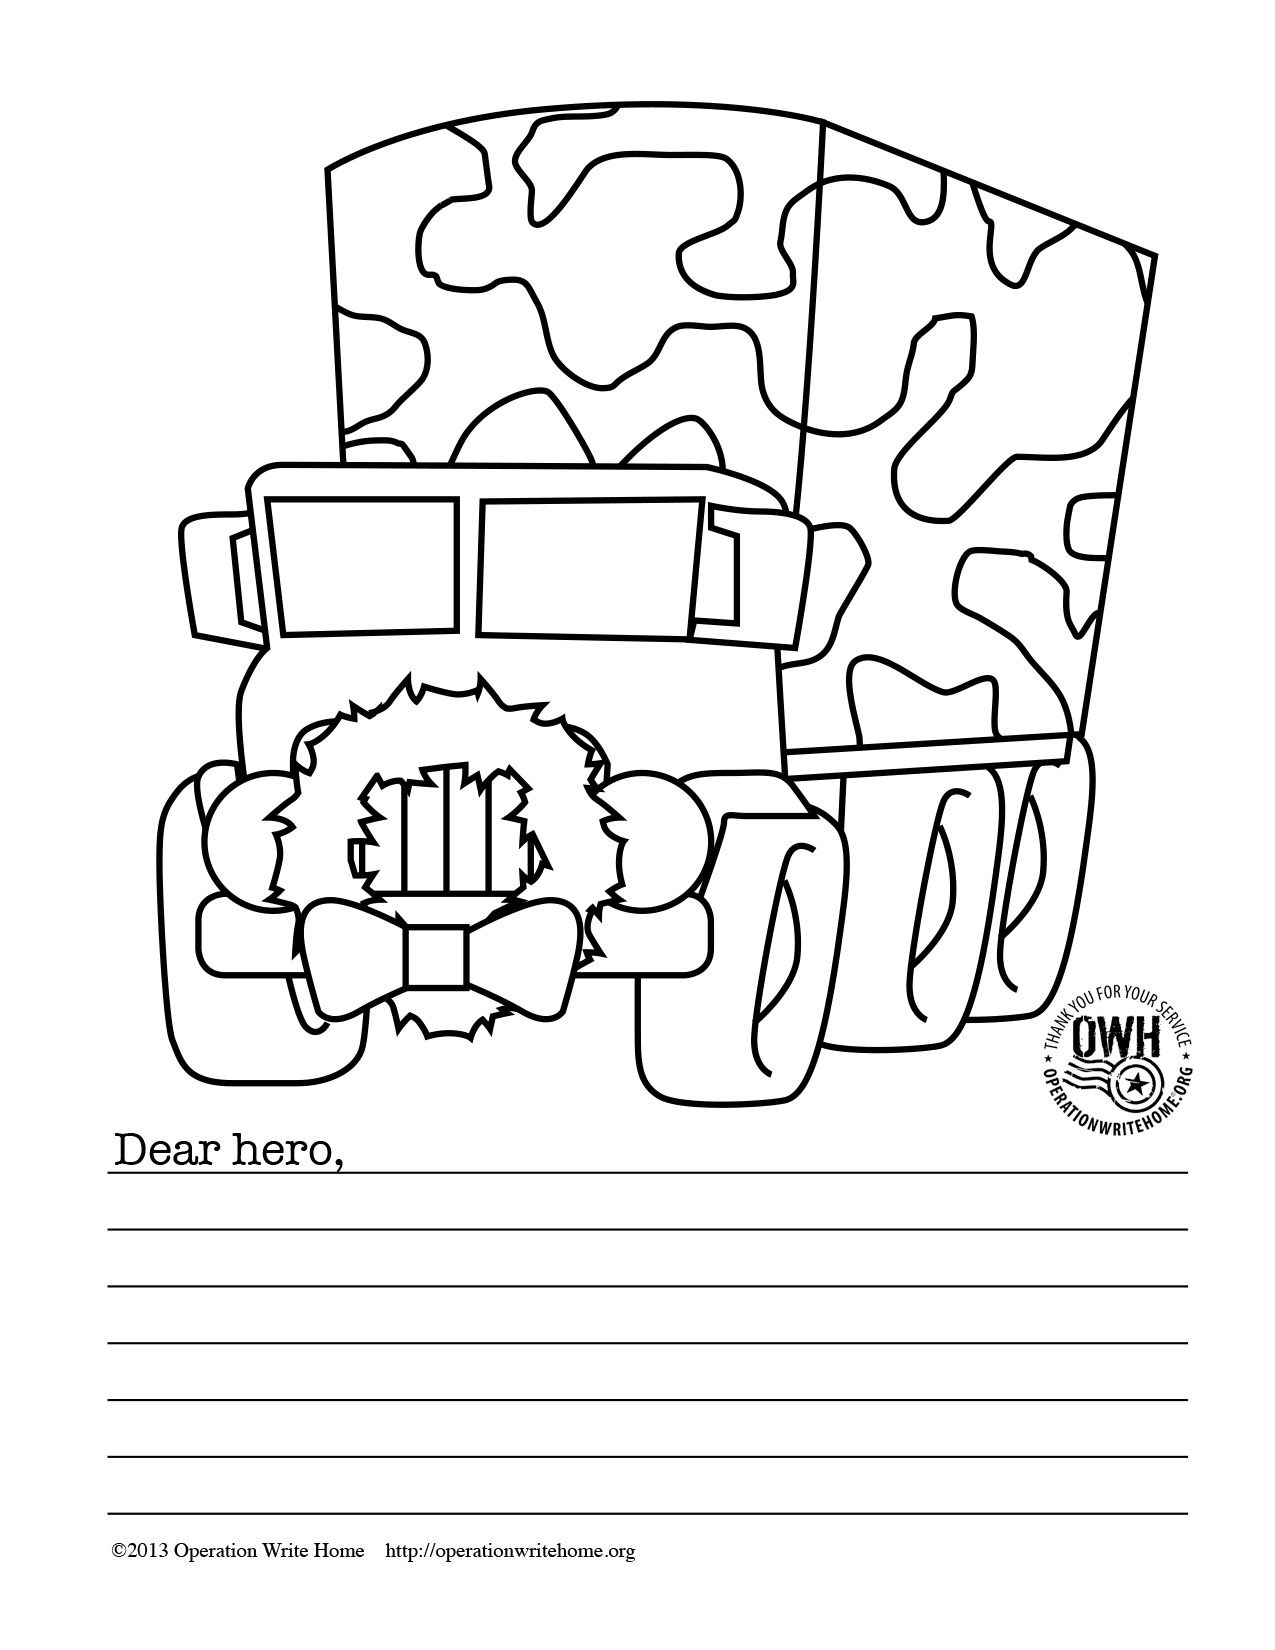 Christmas Coloring Pages For Cards With FREE Military Operation Write Home